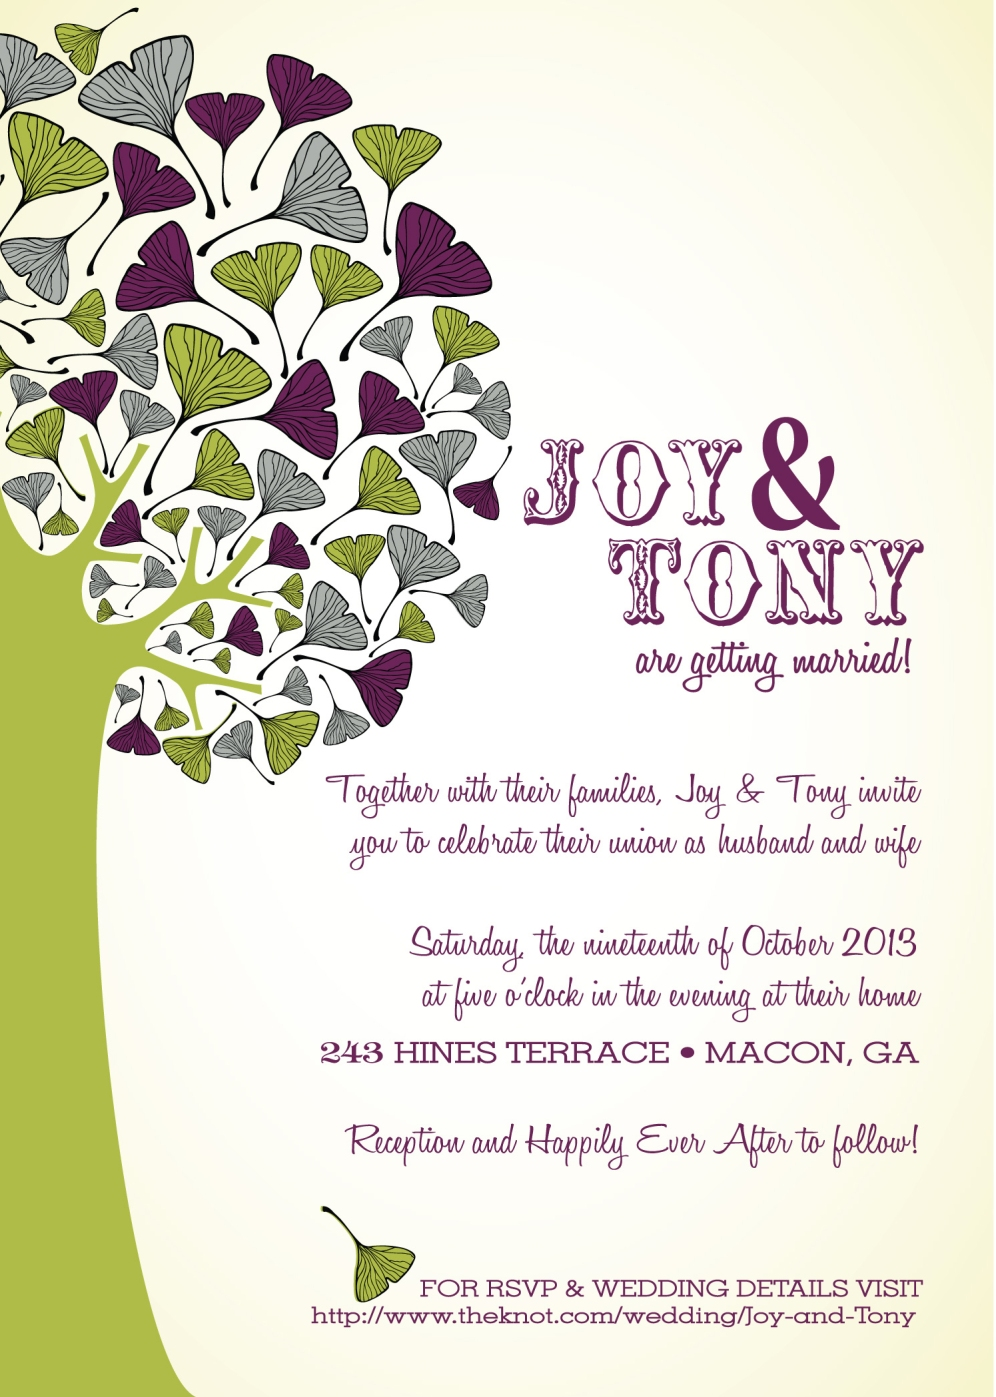 Special Events Design for a Wedding